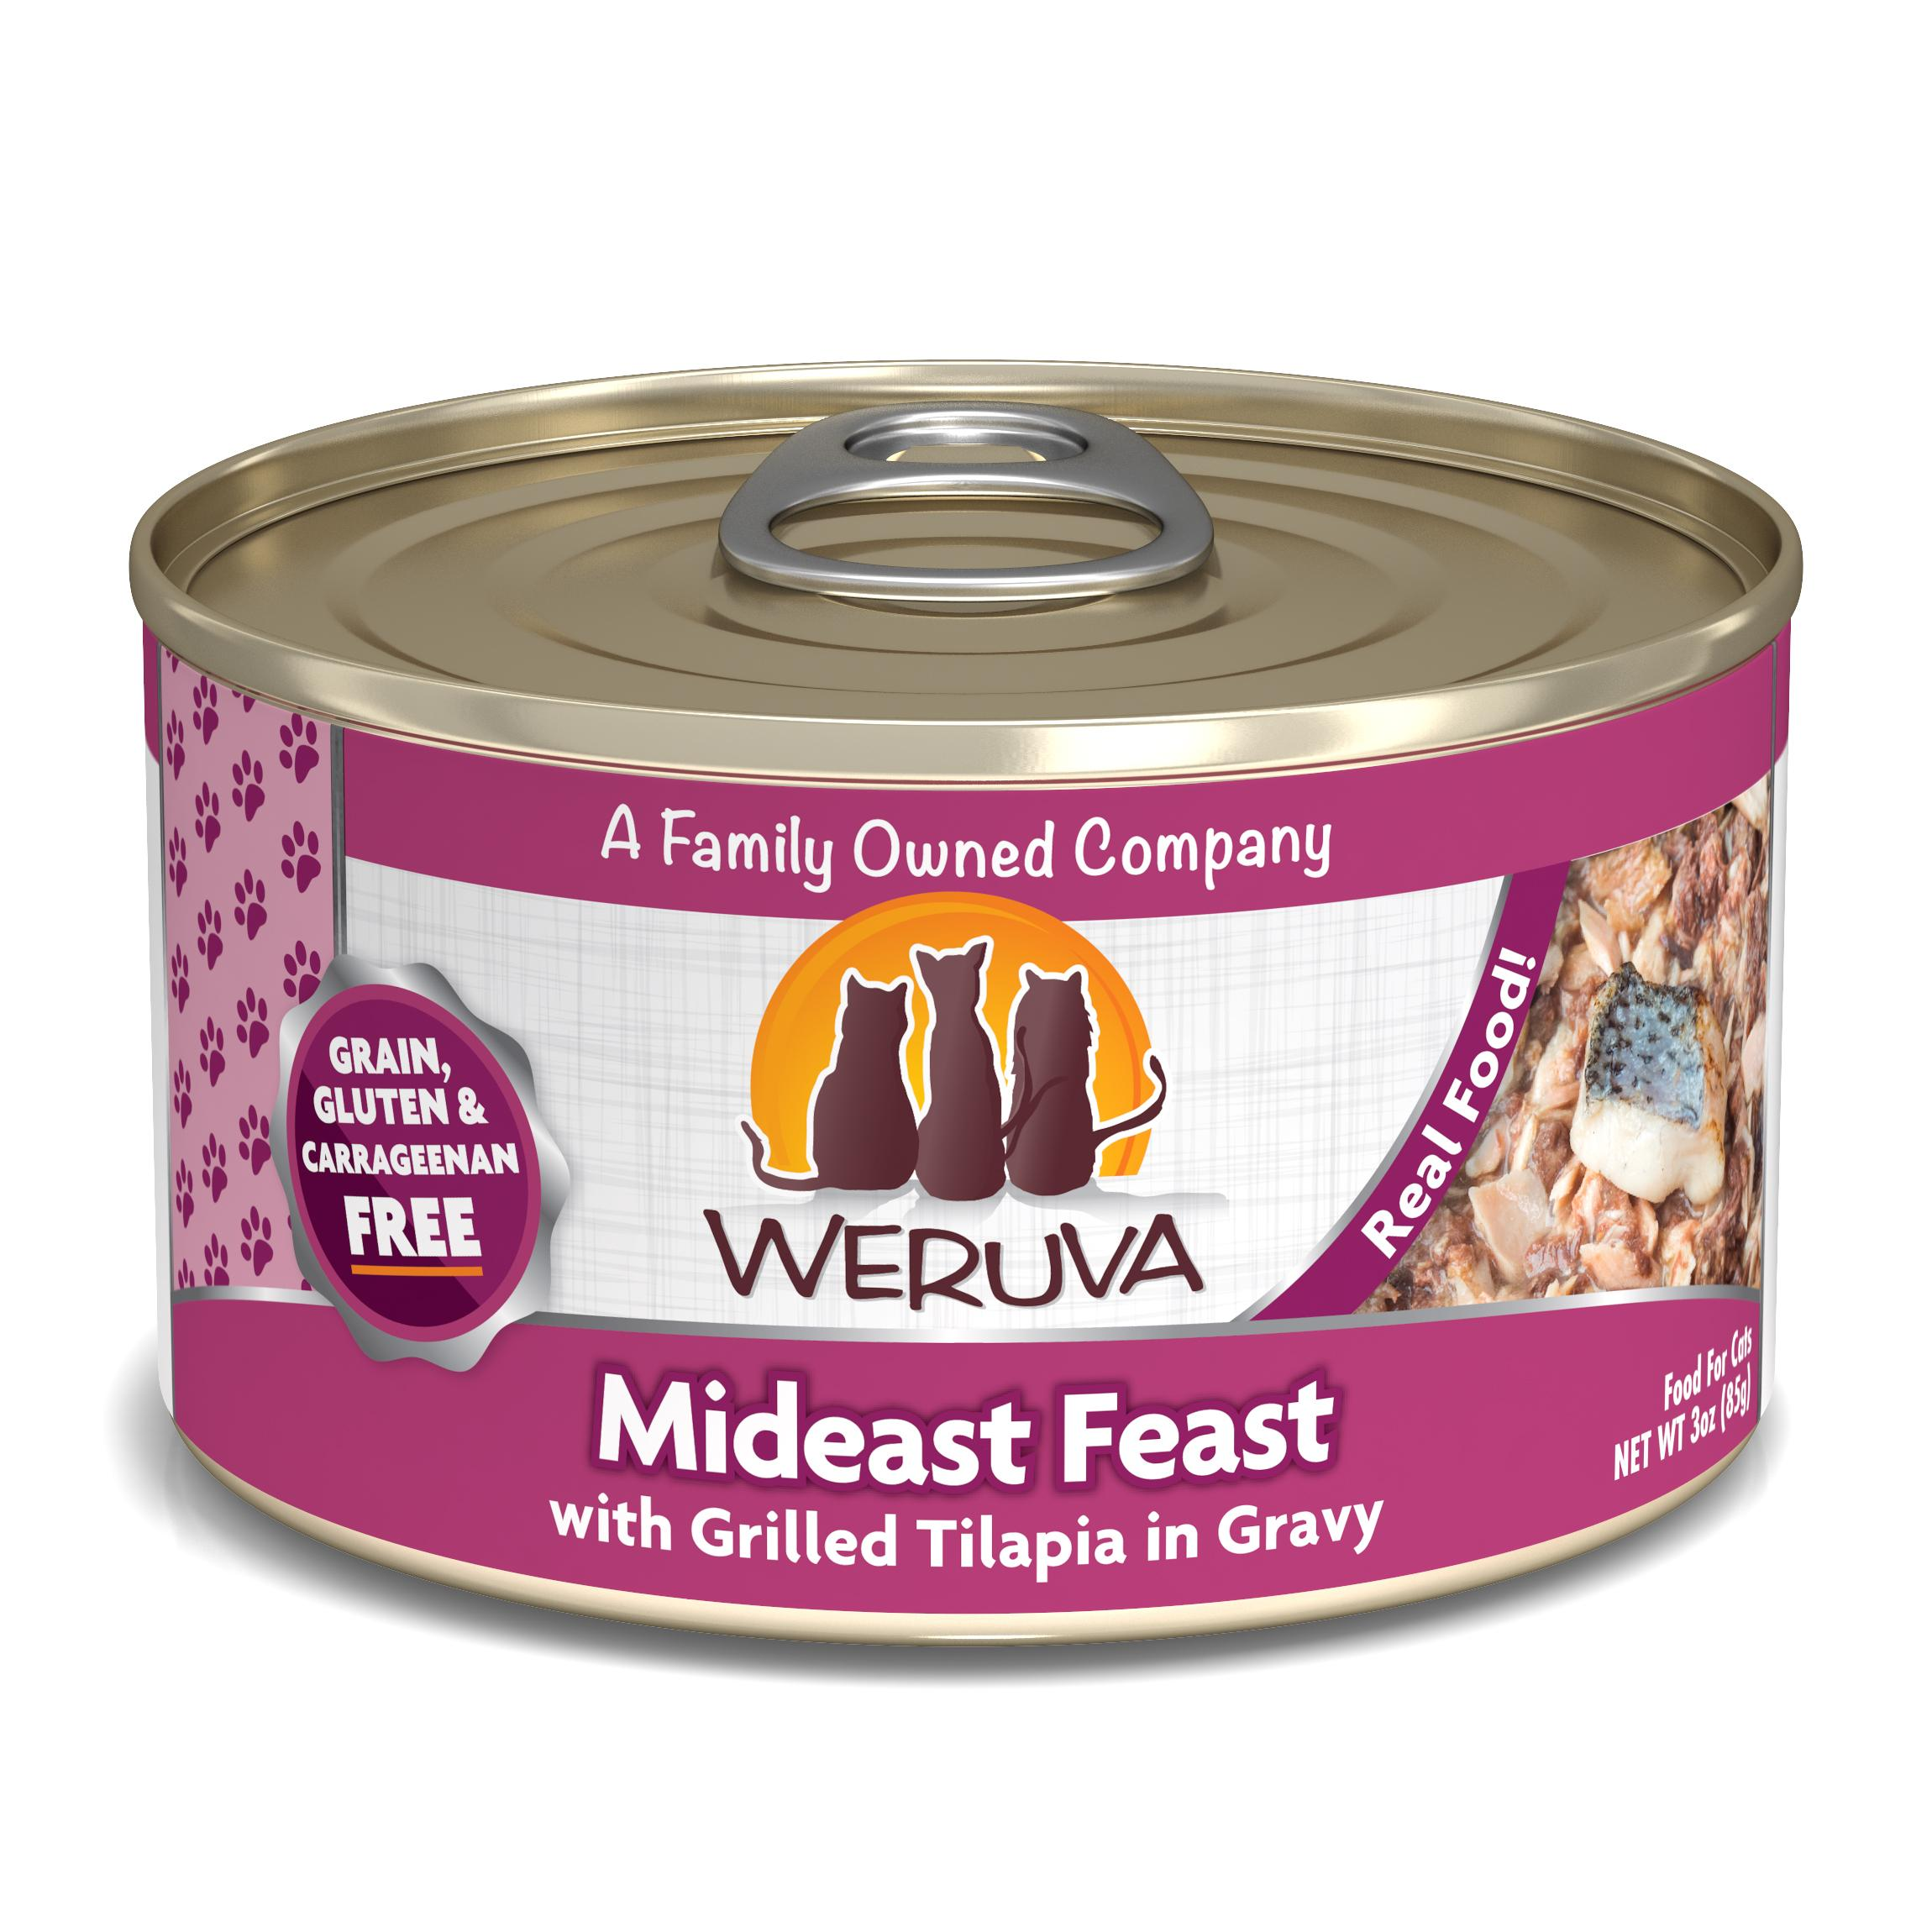 Weruva Cat Classic Mideast Feast with Grilled Tilapia in Gravy Grain-Free Wet Cat Food Image